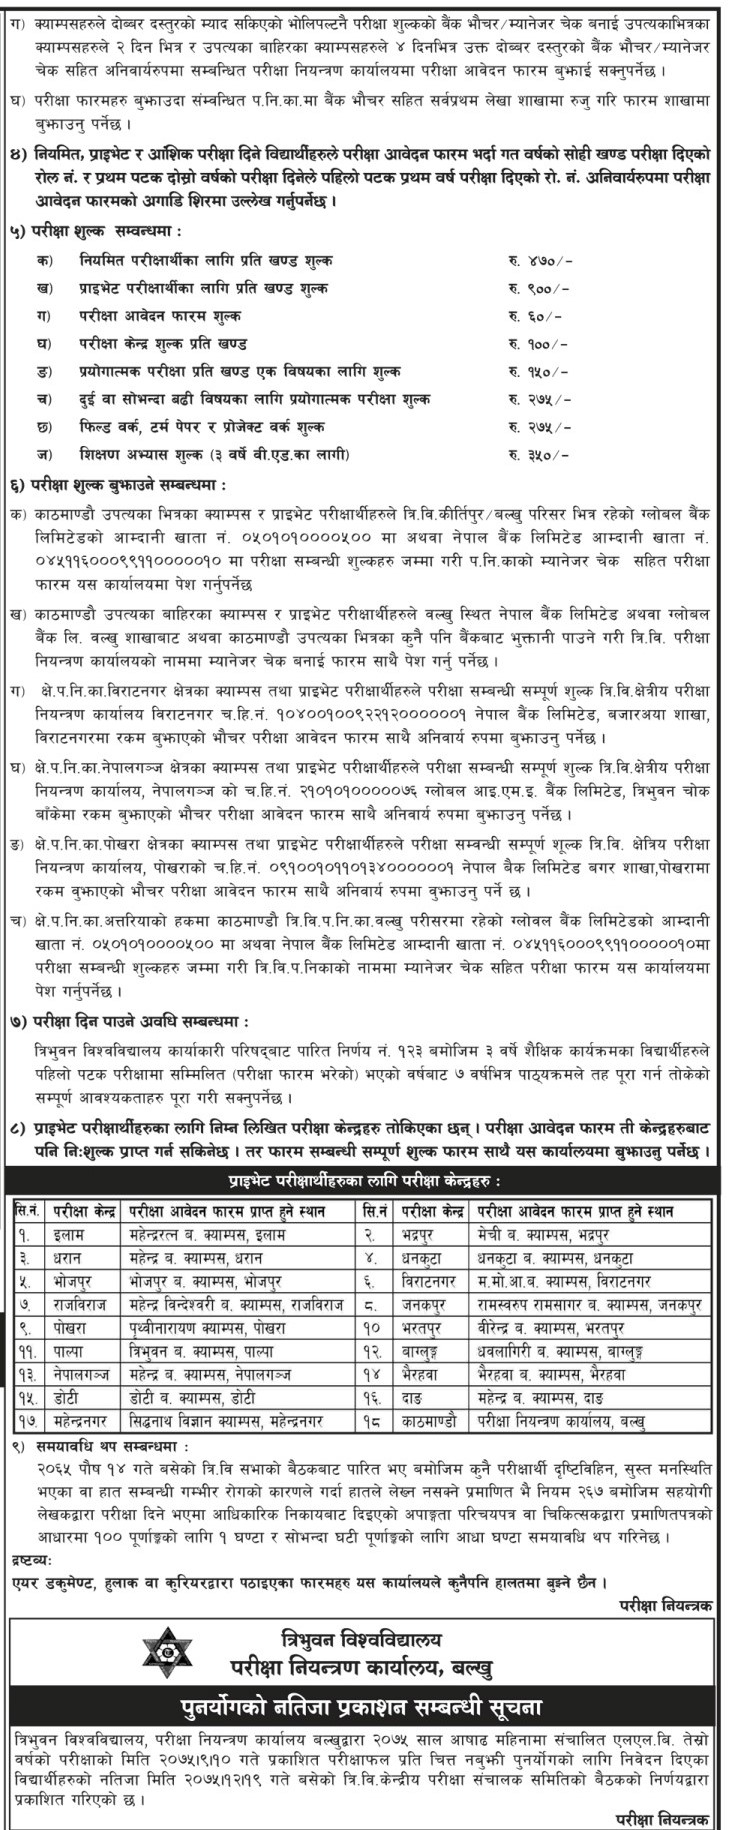 3/4 Years Bachelor Second Year Exam Form Filling Notice